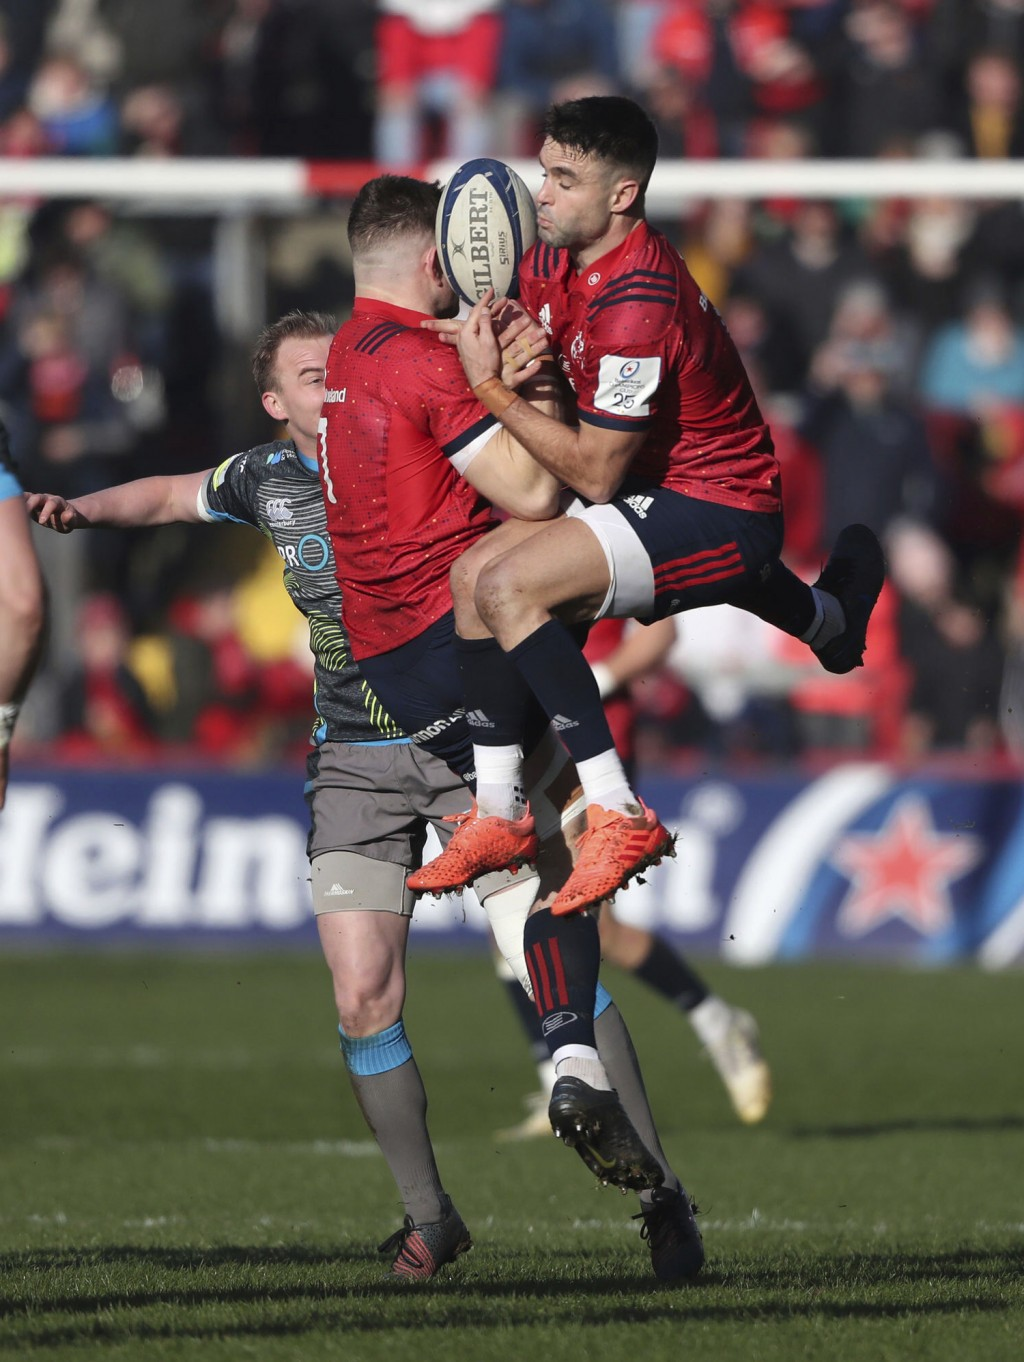 Munster's Conor Murray clashes with team mate Jack O'Donoghue during the match against Ospreys, during their Champions Cup, pool four match at Thomond...